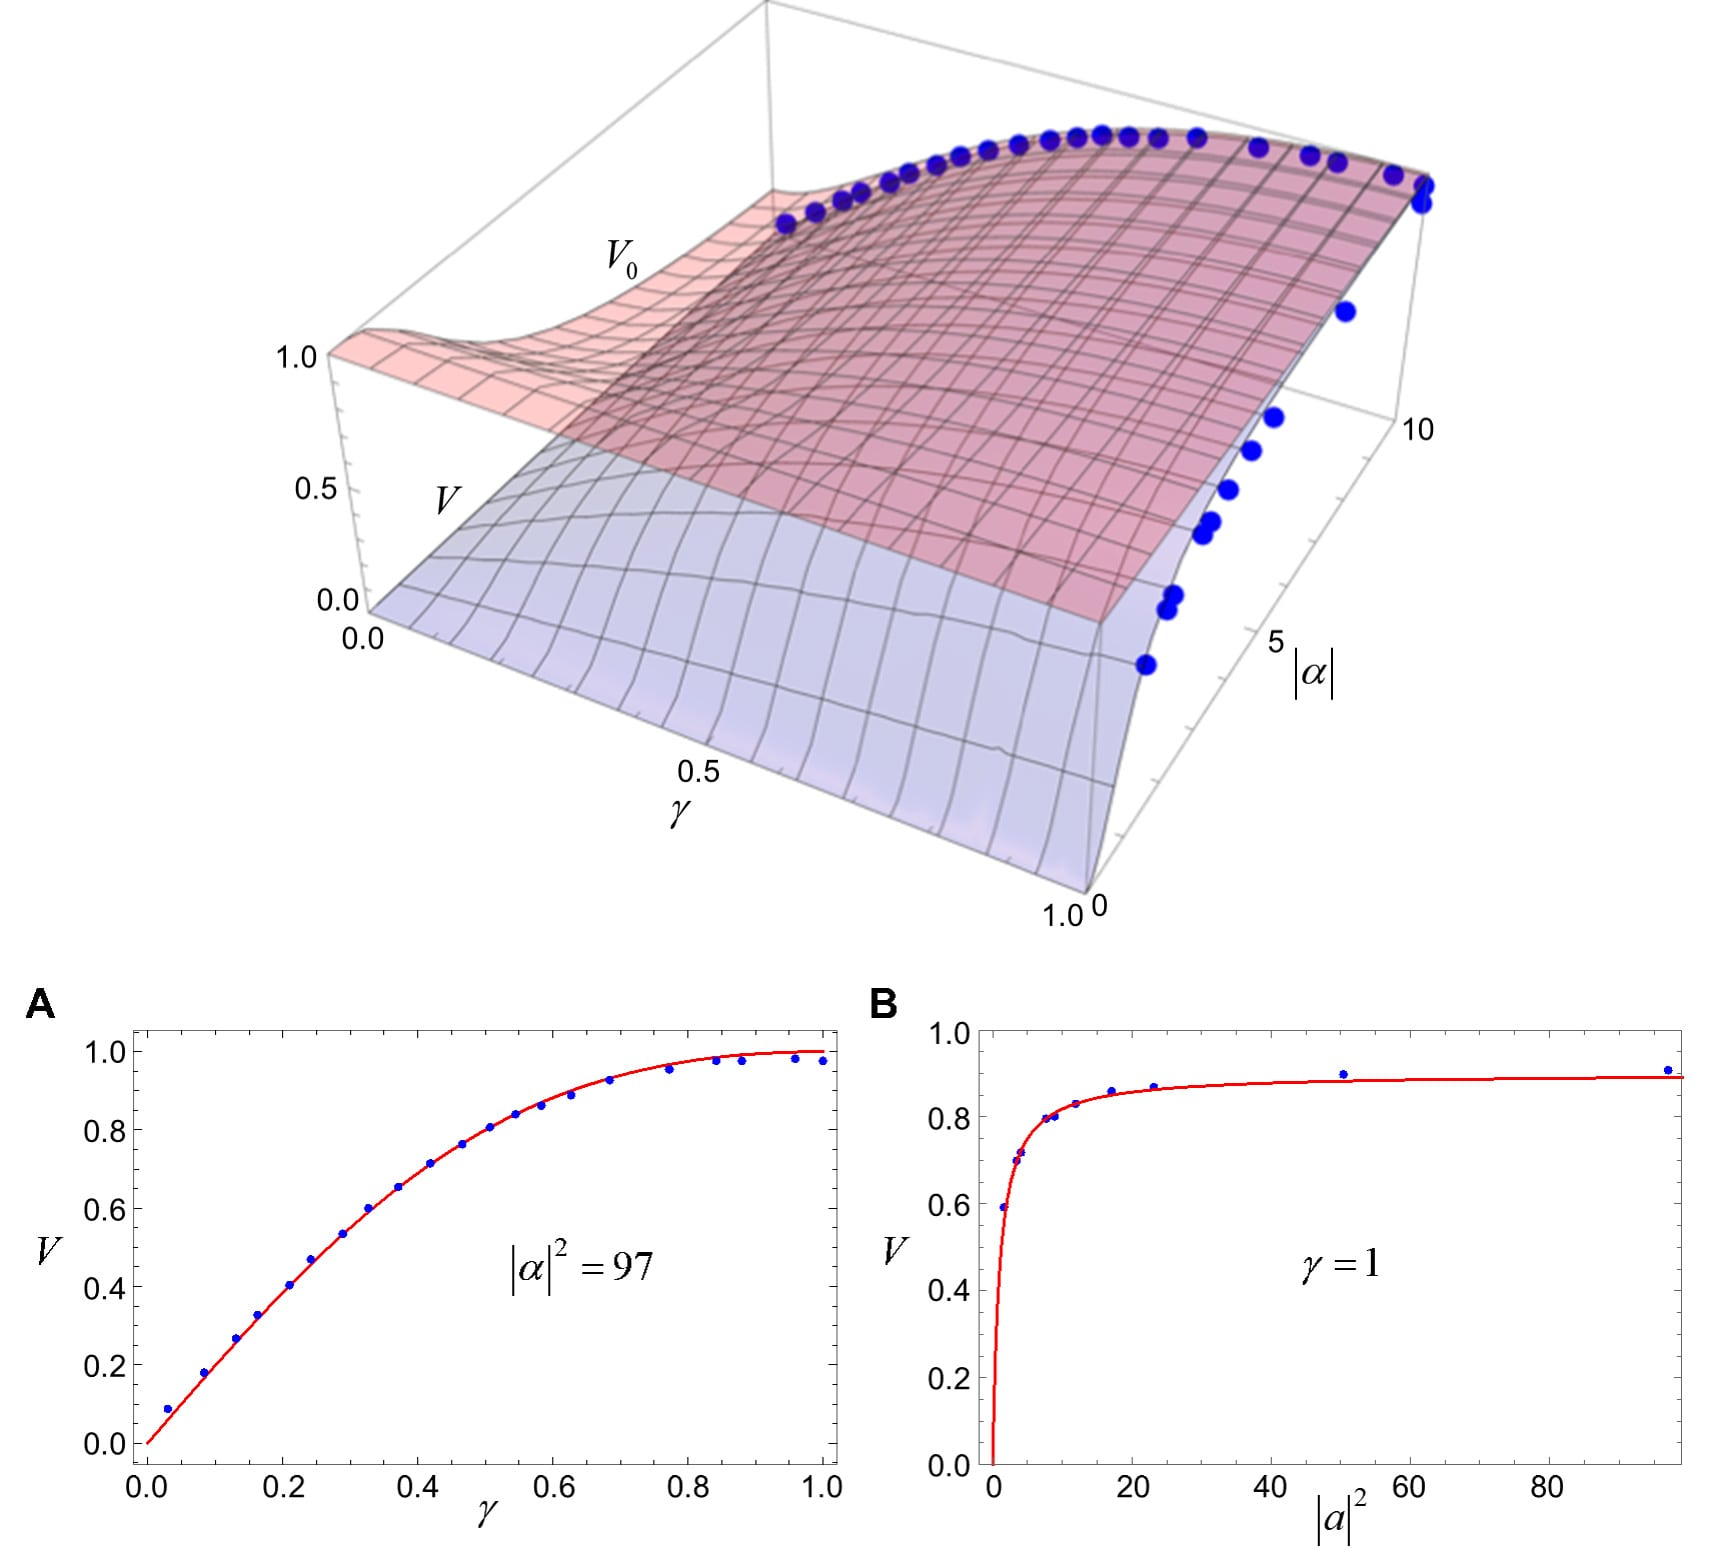 Fringe visibility V and a priori visibility V0 as functions of γ = ∣α2∣ / ∣α1∣ and ∣α∣ = ∣α2∣.